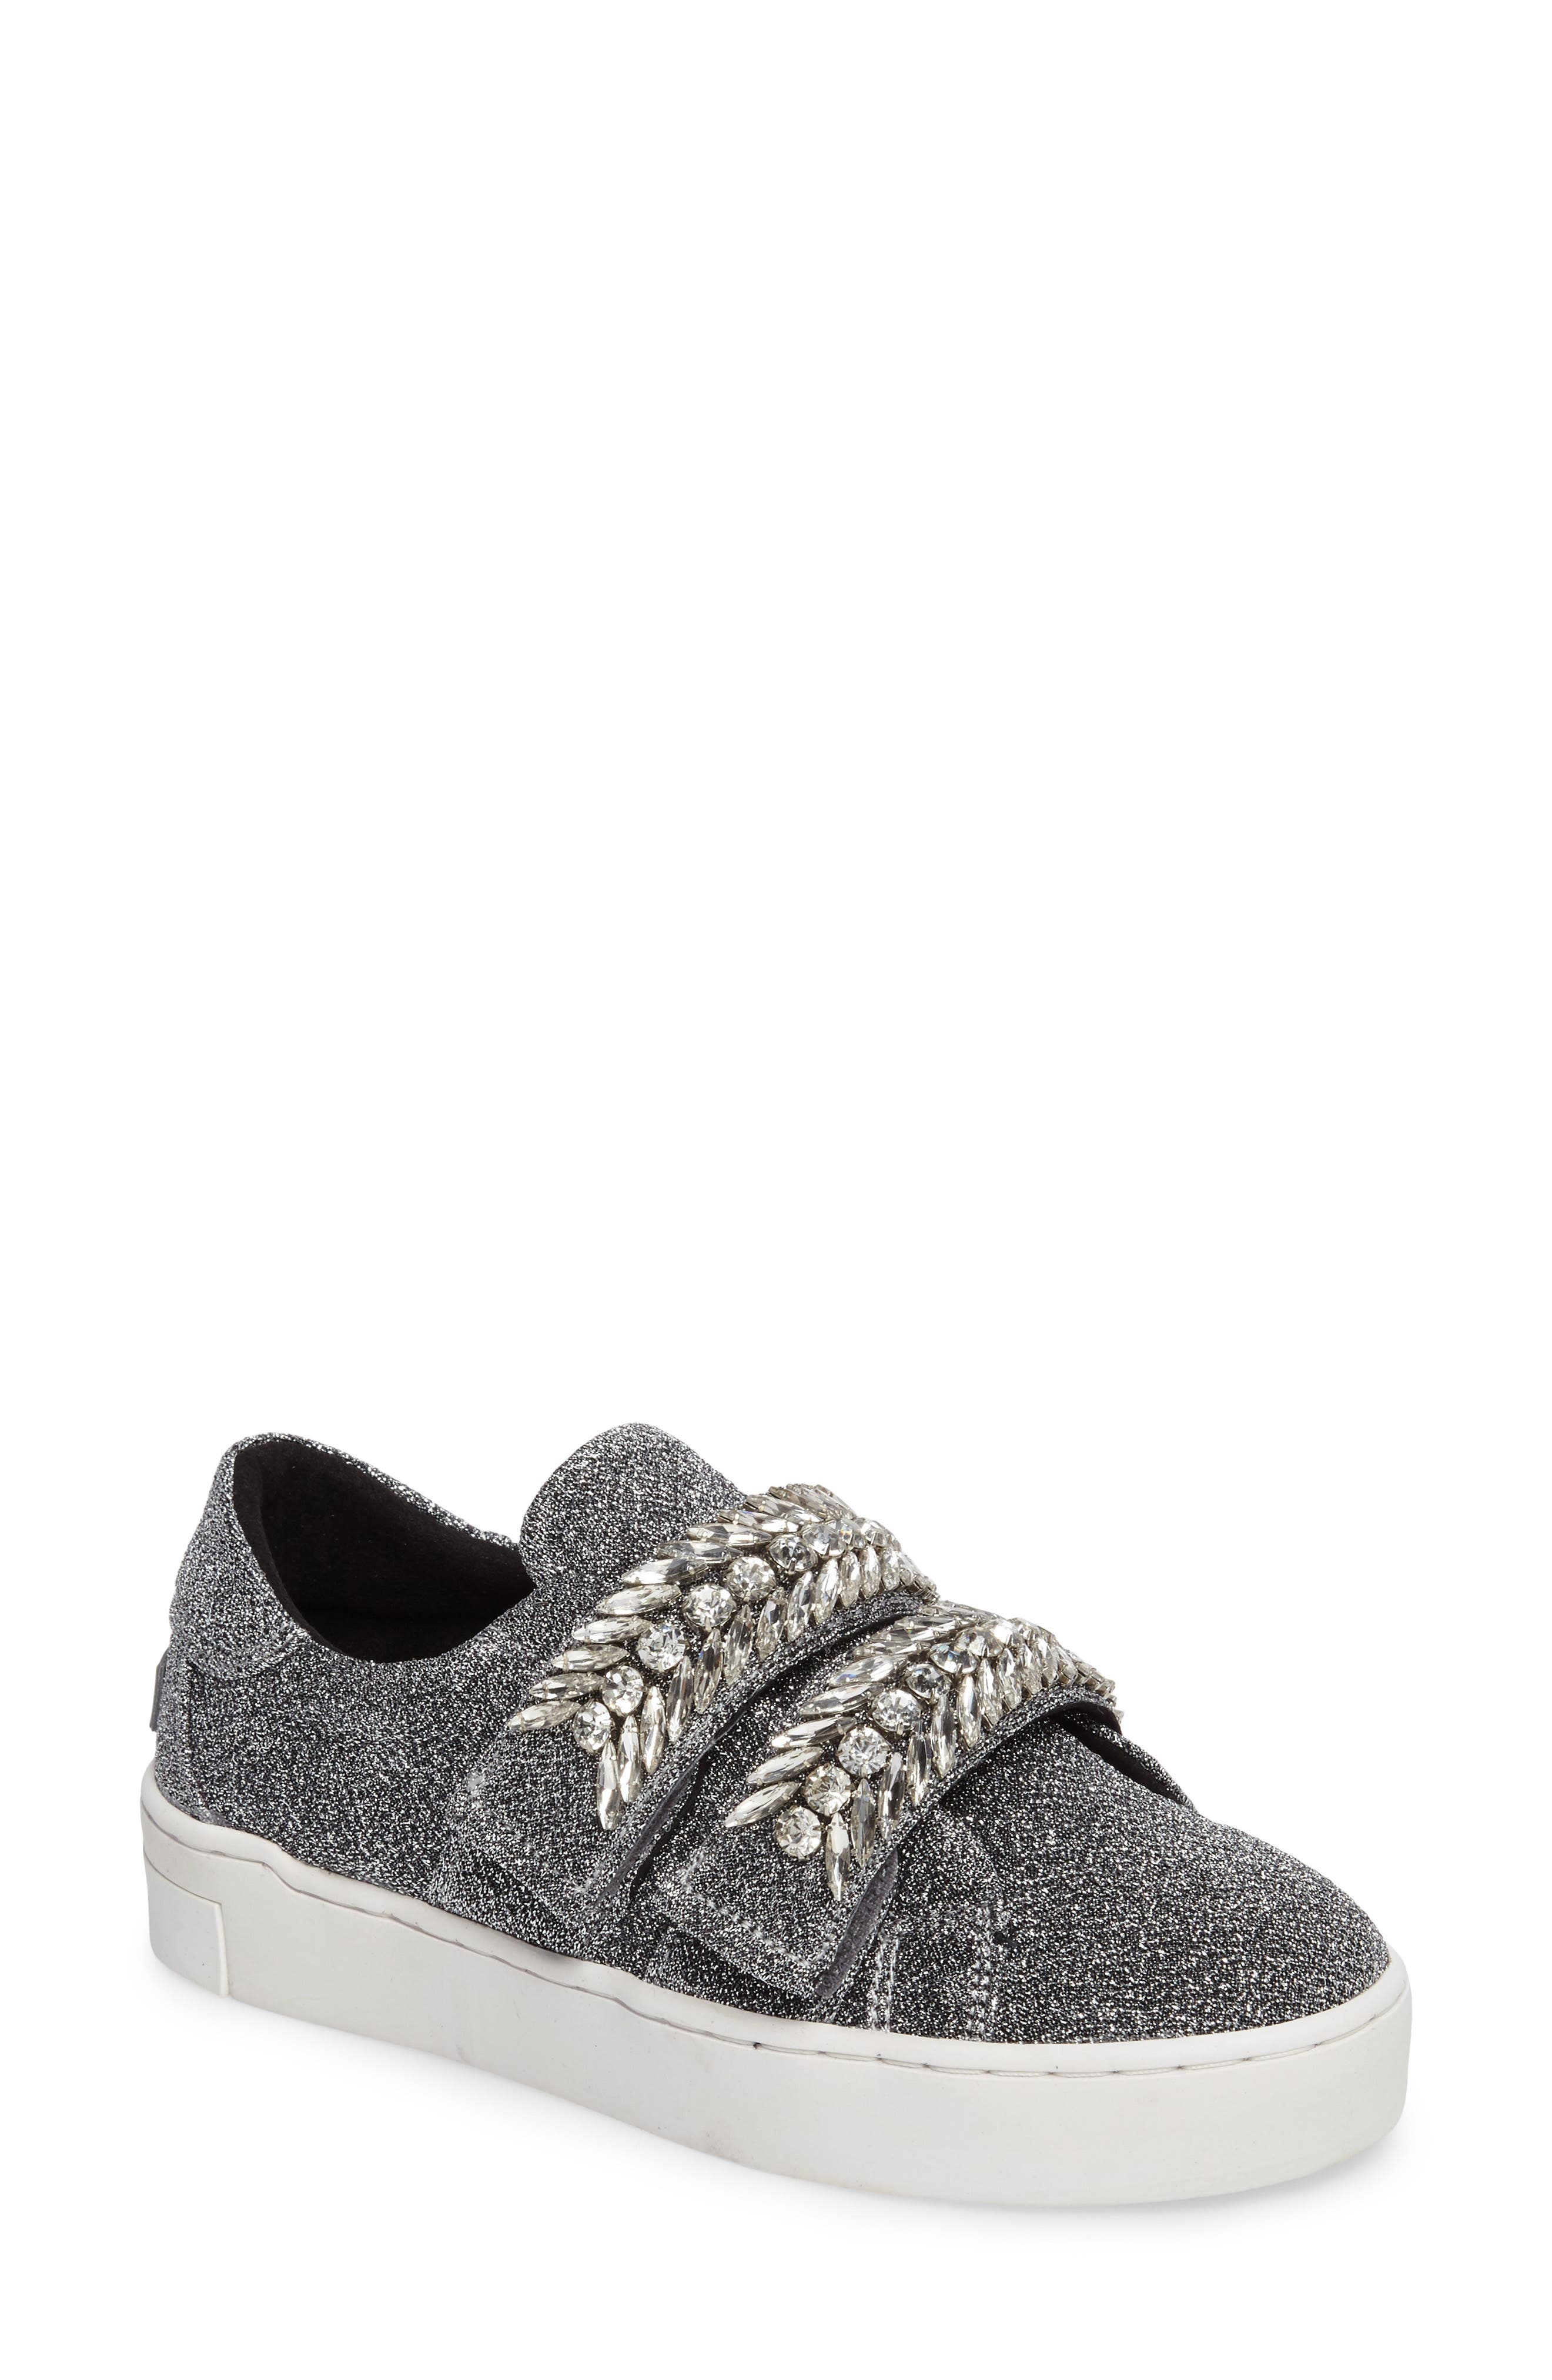 SUECOMMA BONNIE Crystal Embellished Sneaker, Main, color, 040